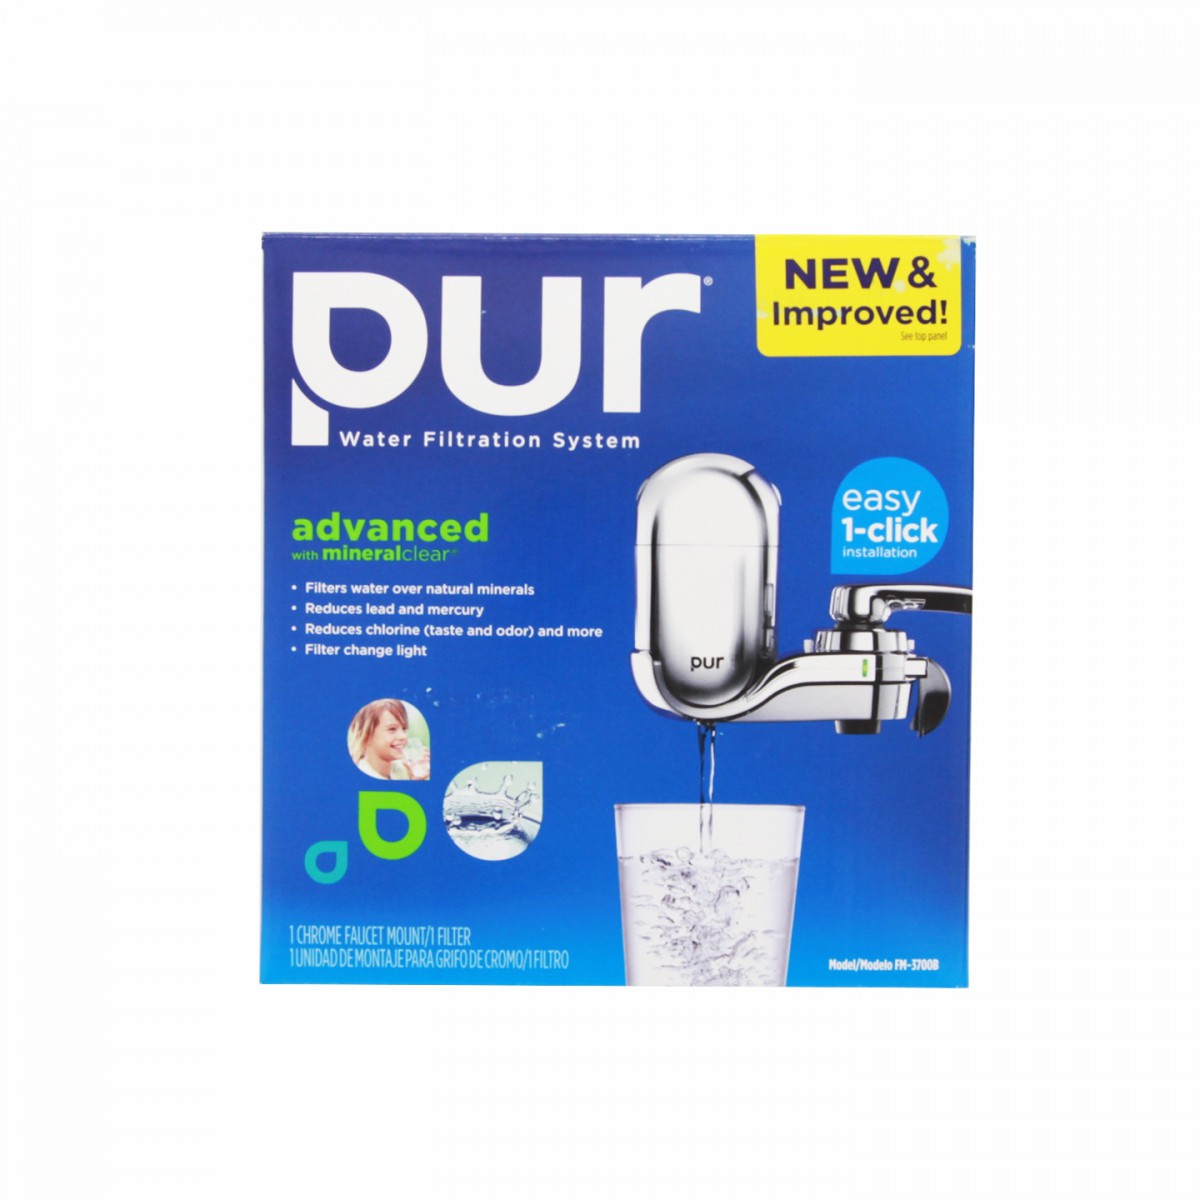 PUR FM-3700 Faucet Filter System and PUR FM3700 Faucet Filters